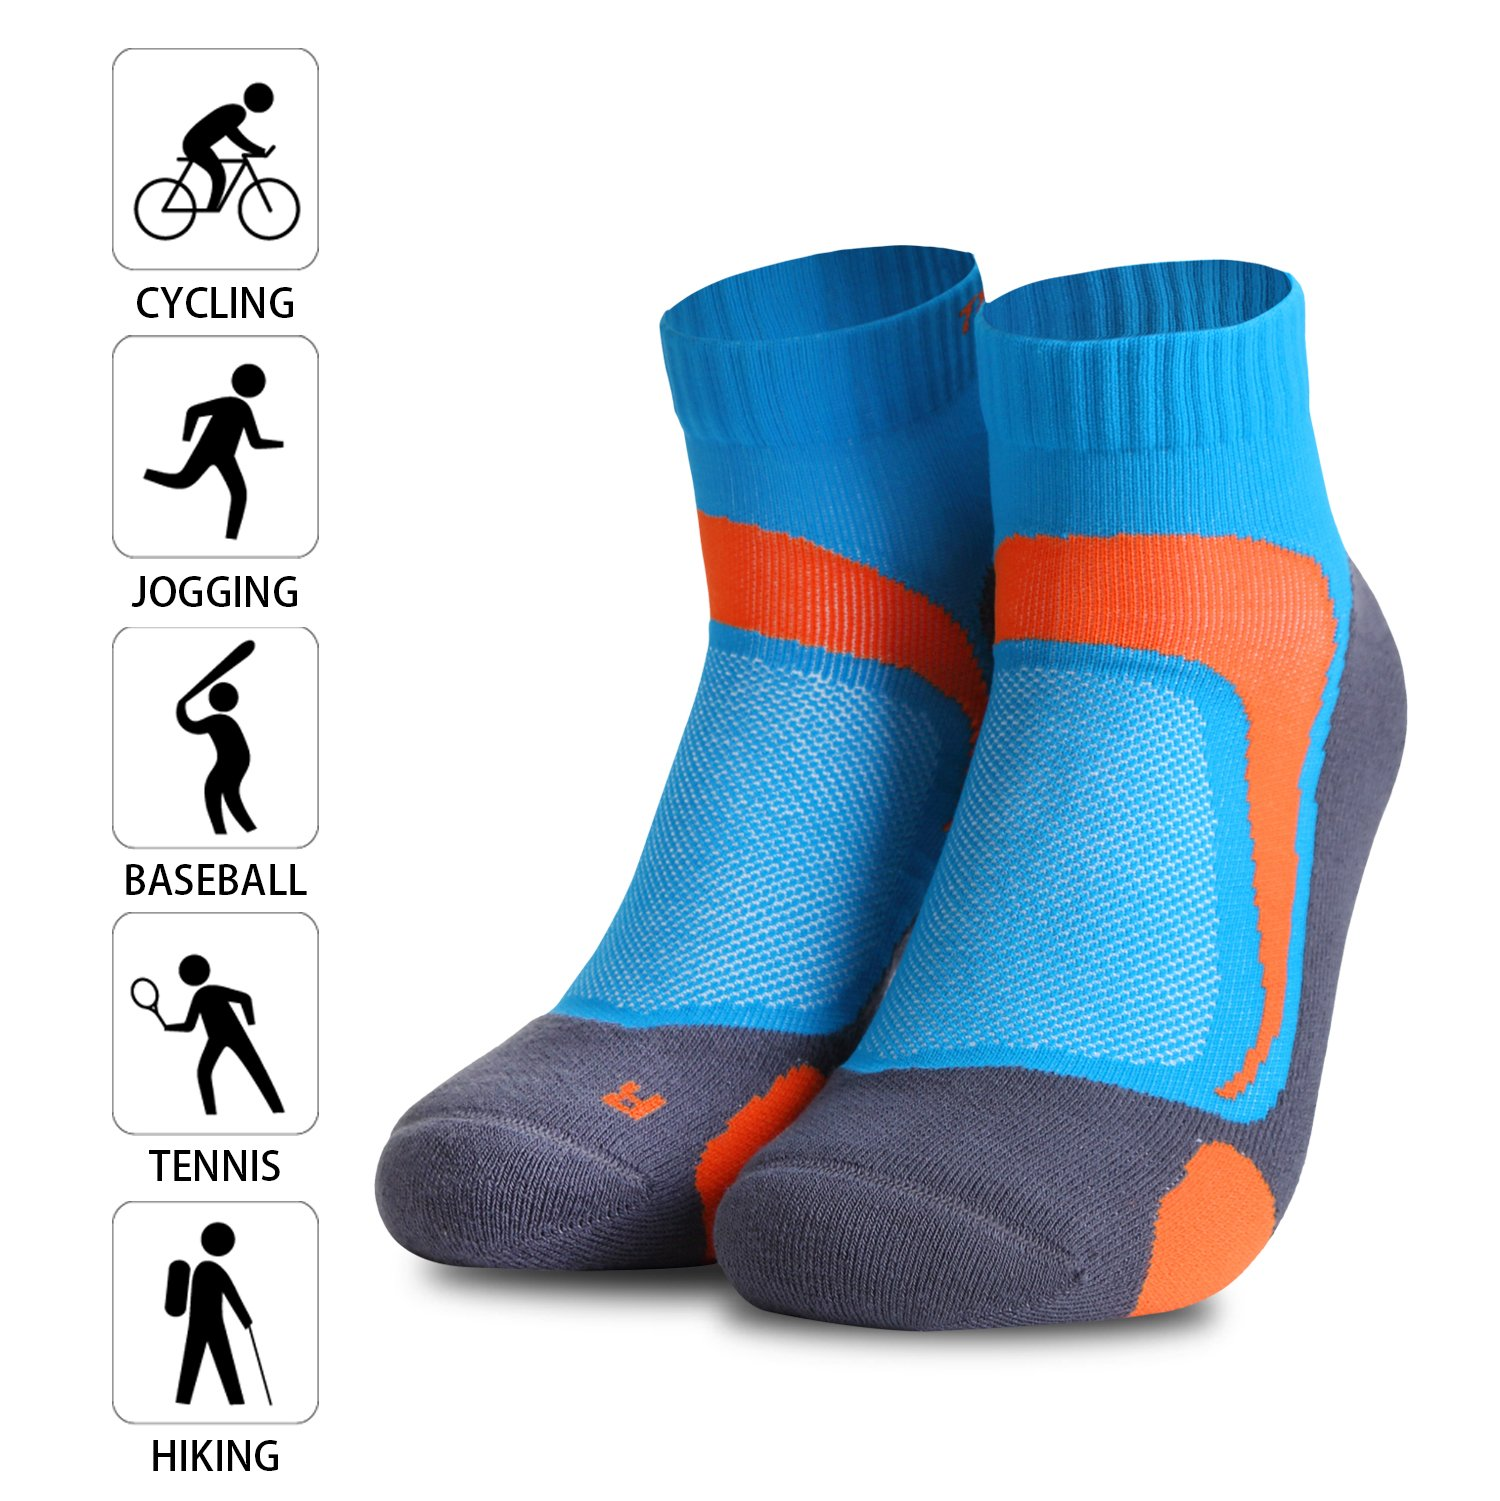 Compression Socks Anklet Low Cut Athletic & Running Socks For Women And Men, Best For Hiking, Cycling, Running And Other Sports